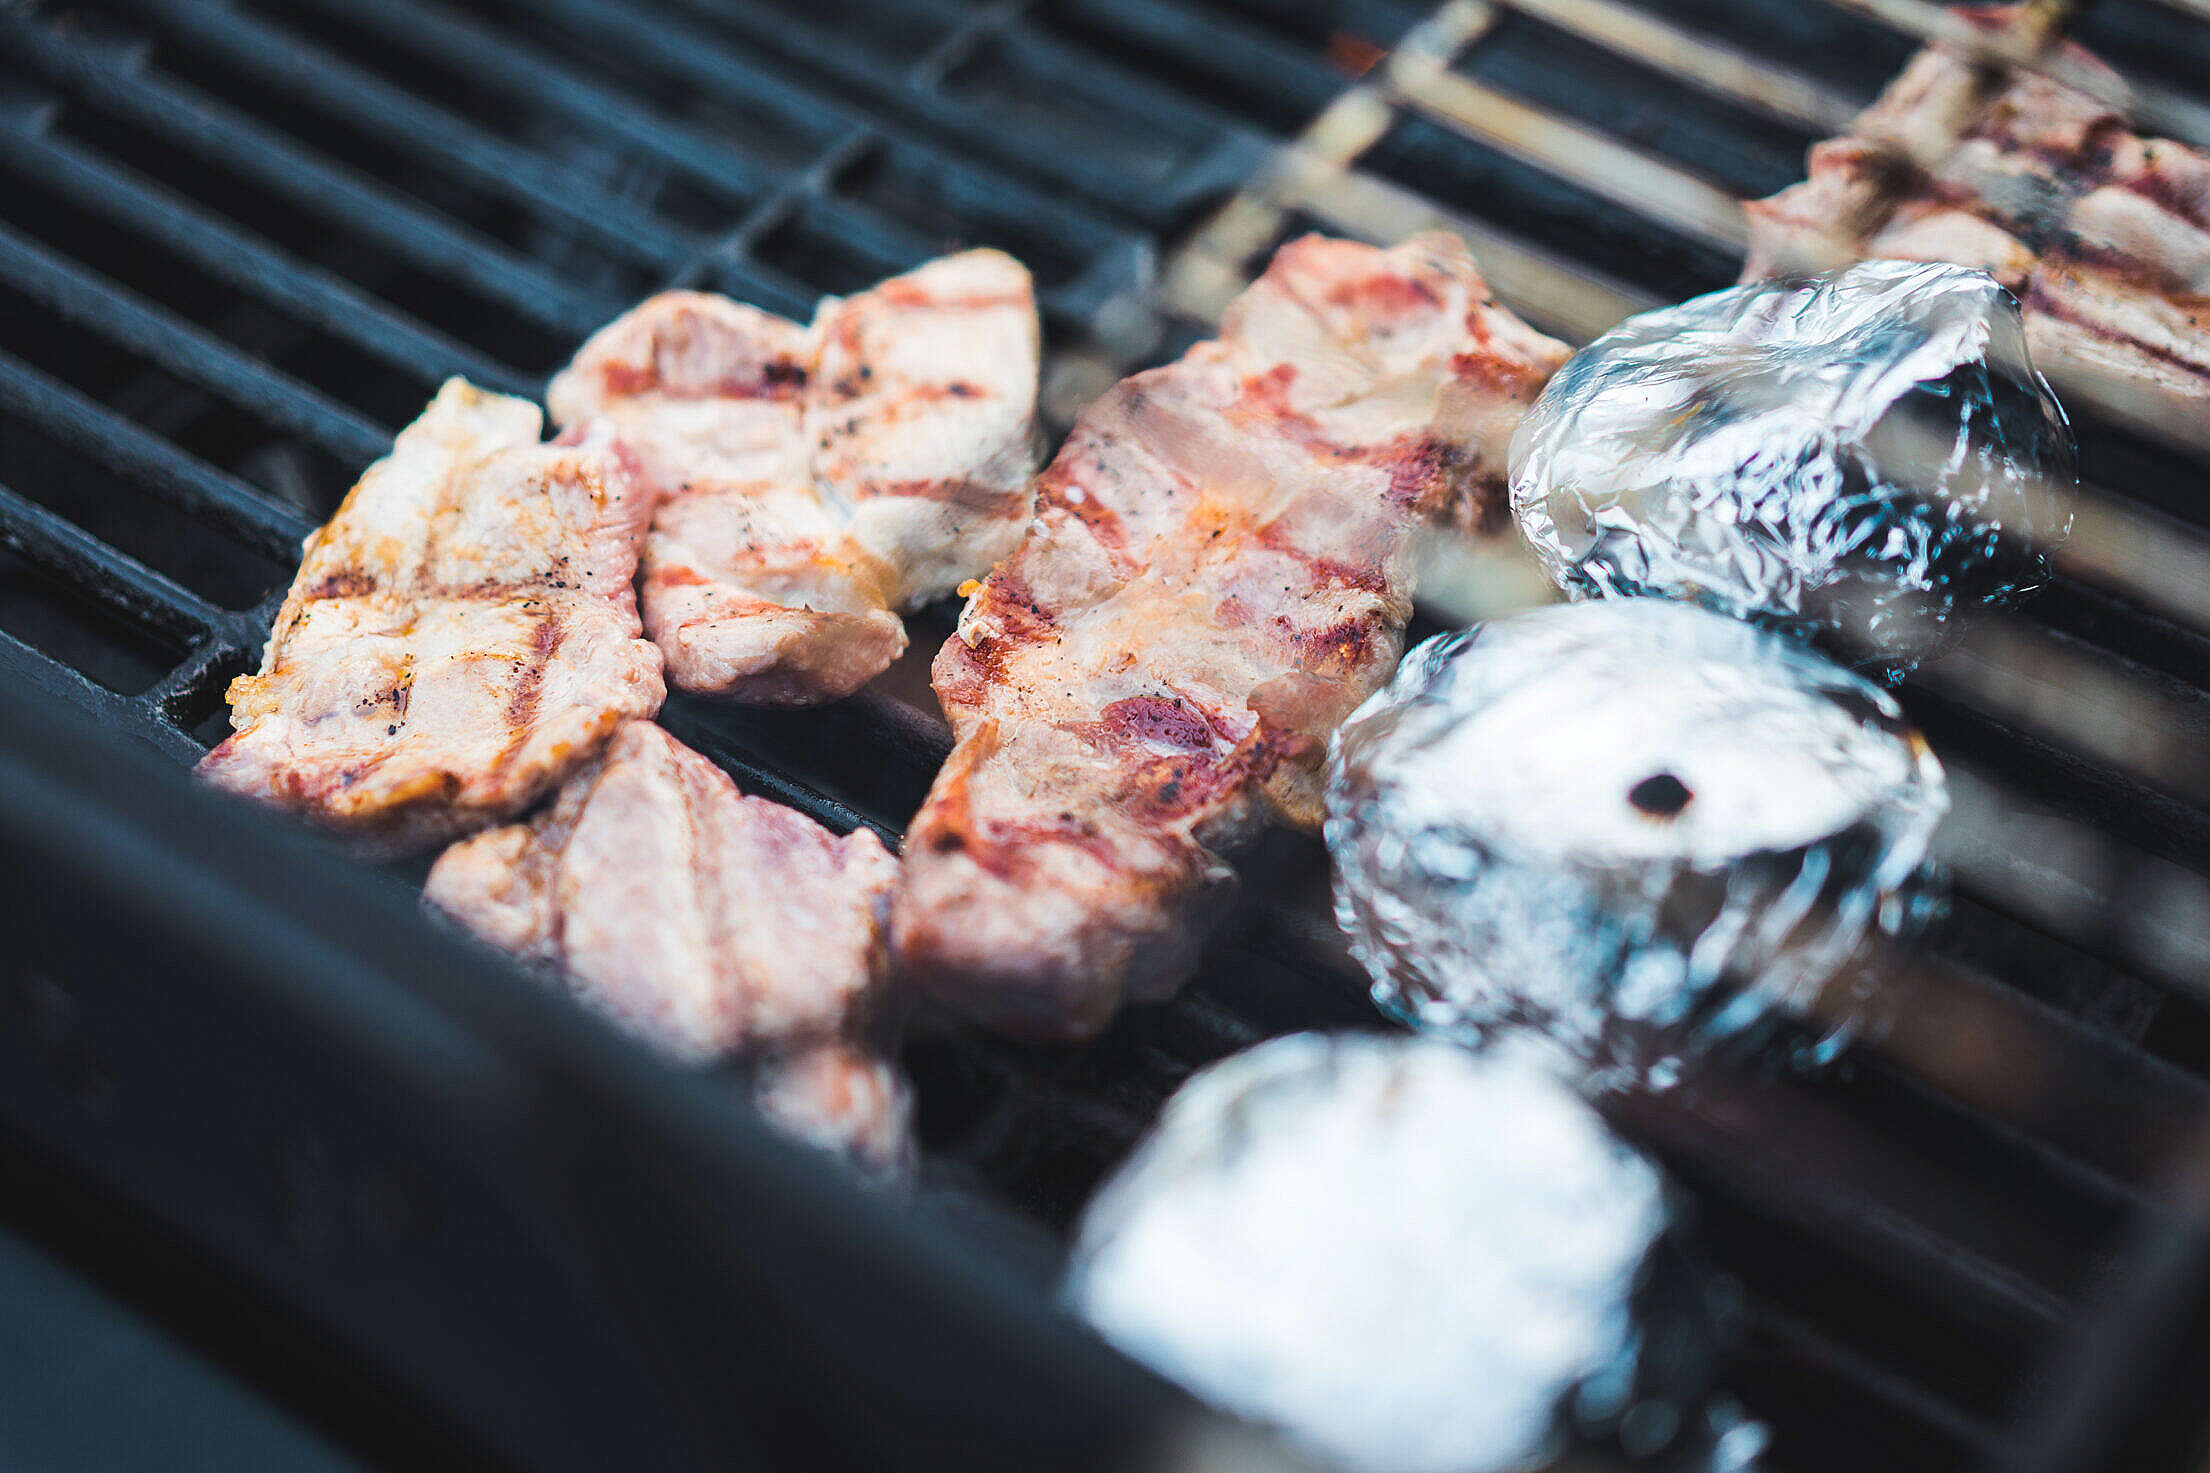 Grilled Meat on BBQ Garden Party Free Stock Photo